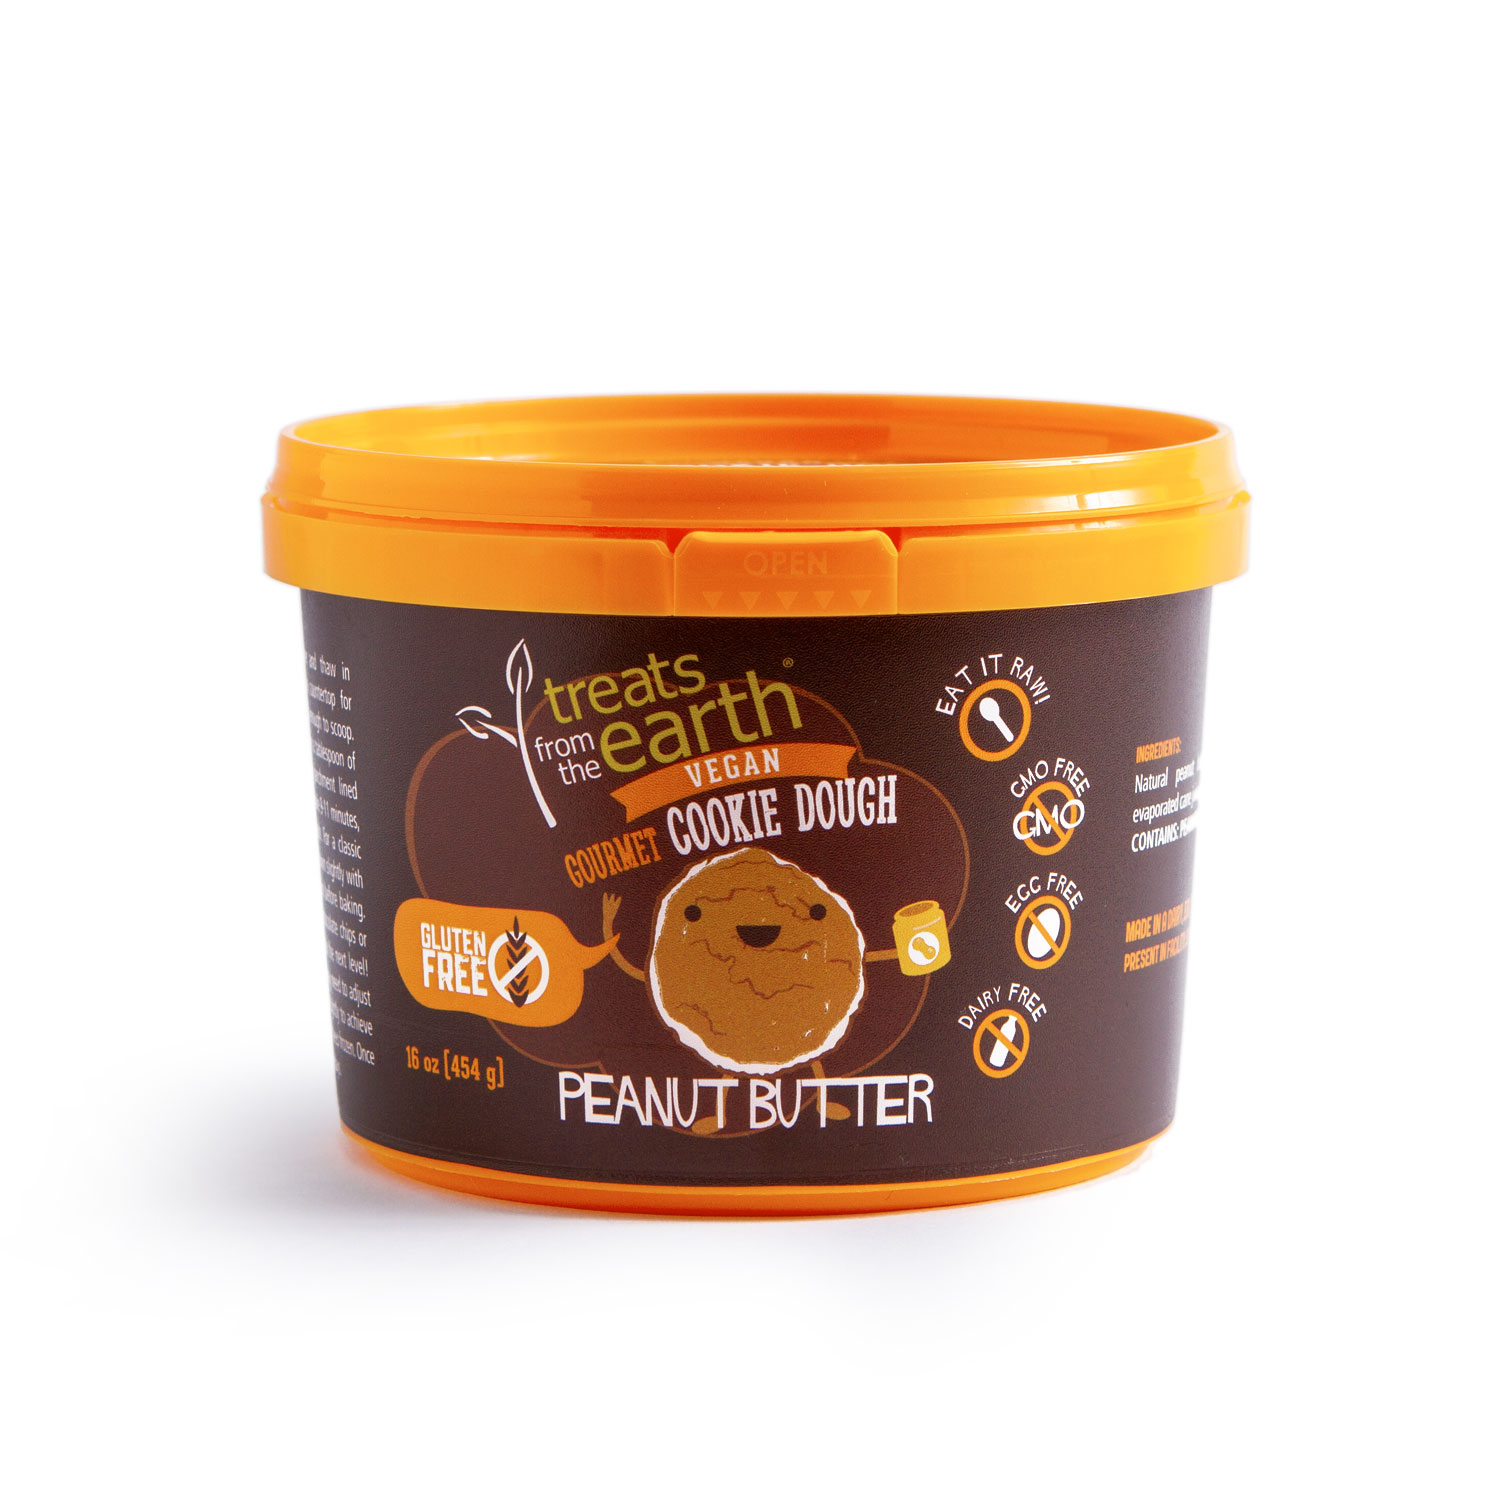 TFTE GF Peanut Butter Cookie Dough pail front